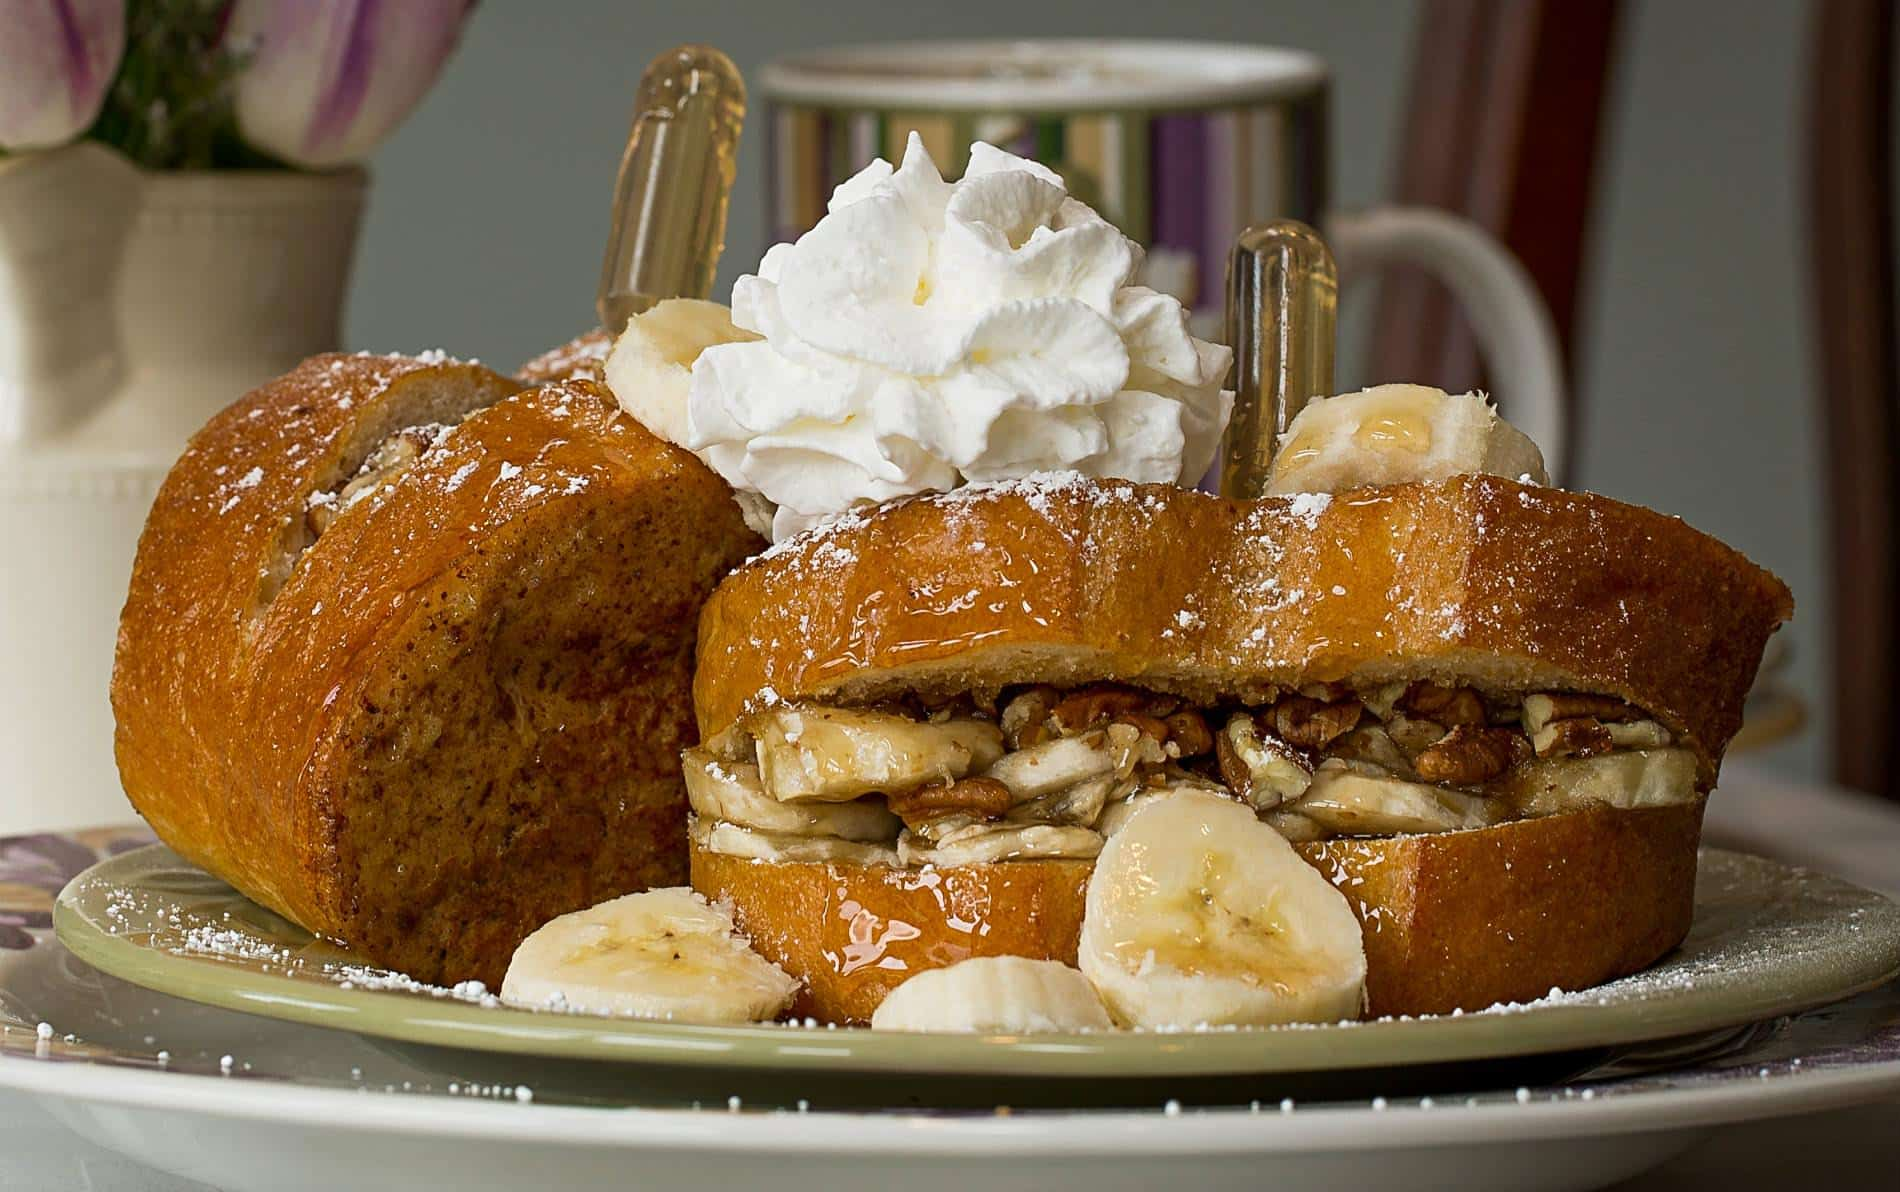 Two pieces of french bread stuffed with bananas and pecans topped with whipped cream